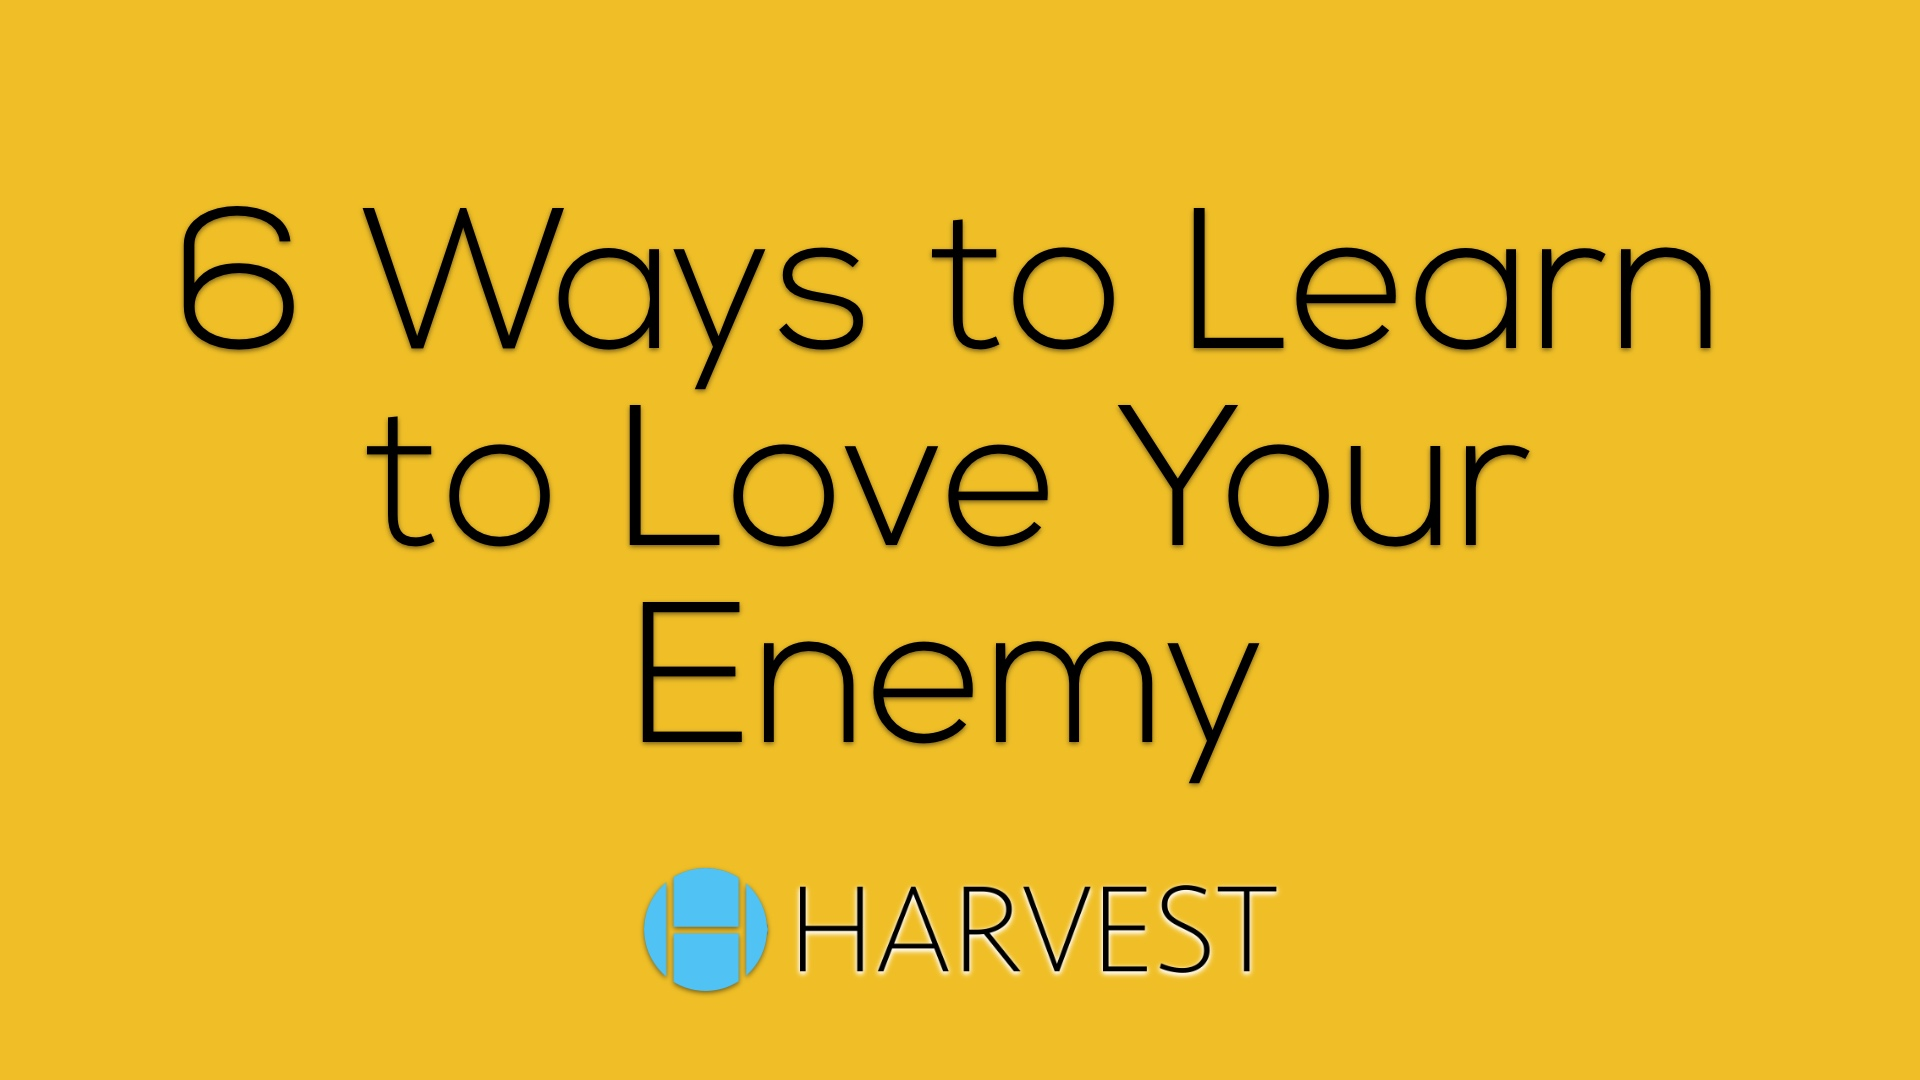 The Art of the Overcomer:  6 Ways to Learn to Love Your Enemy